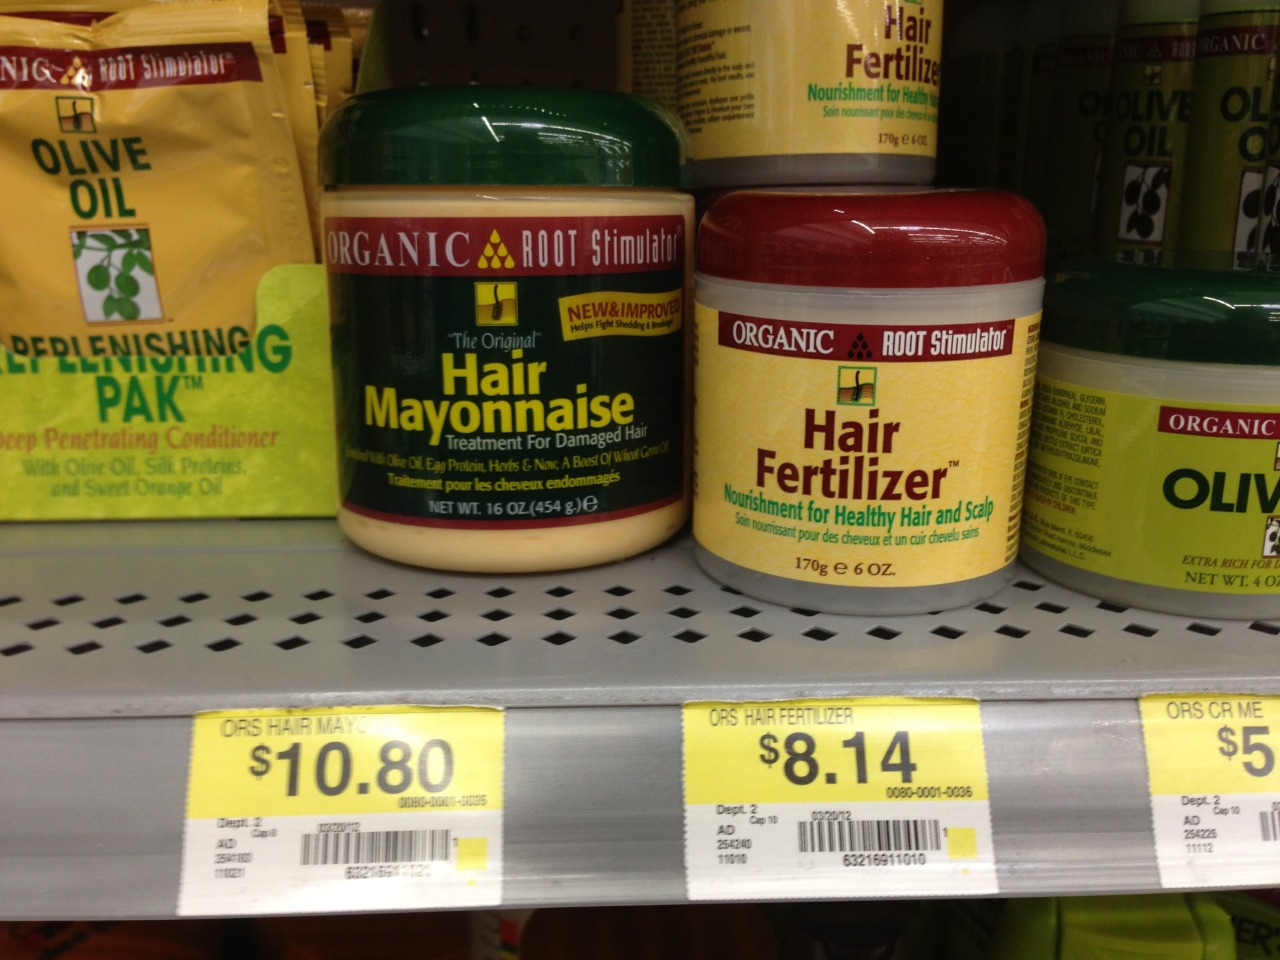 Mmm, hair mayonnaise and hair fertilizer. Well chosen product names. Hurk.